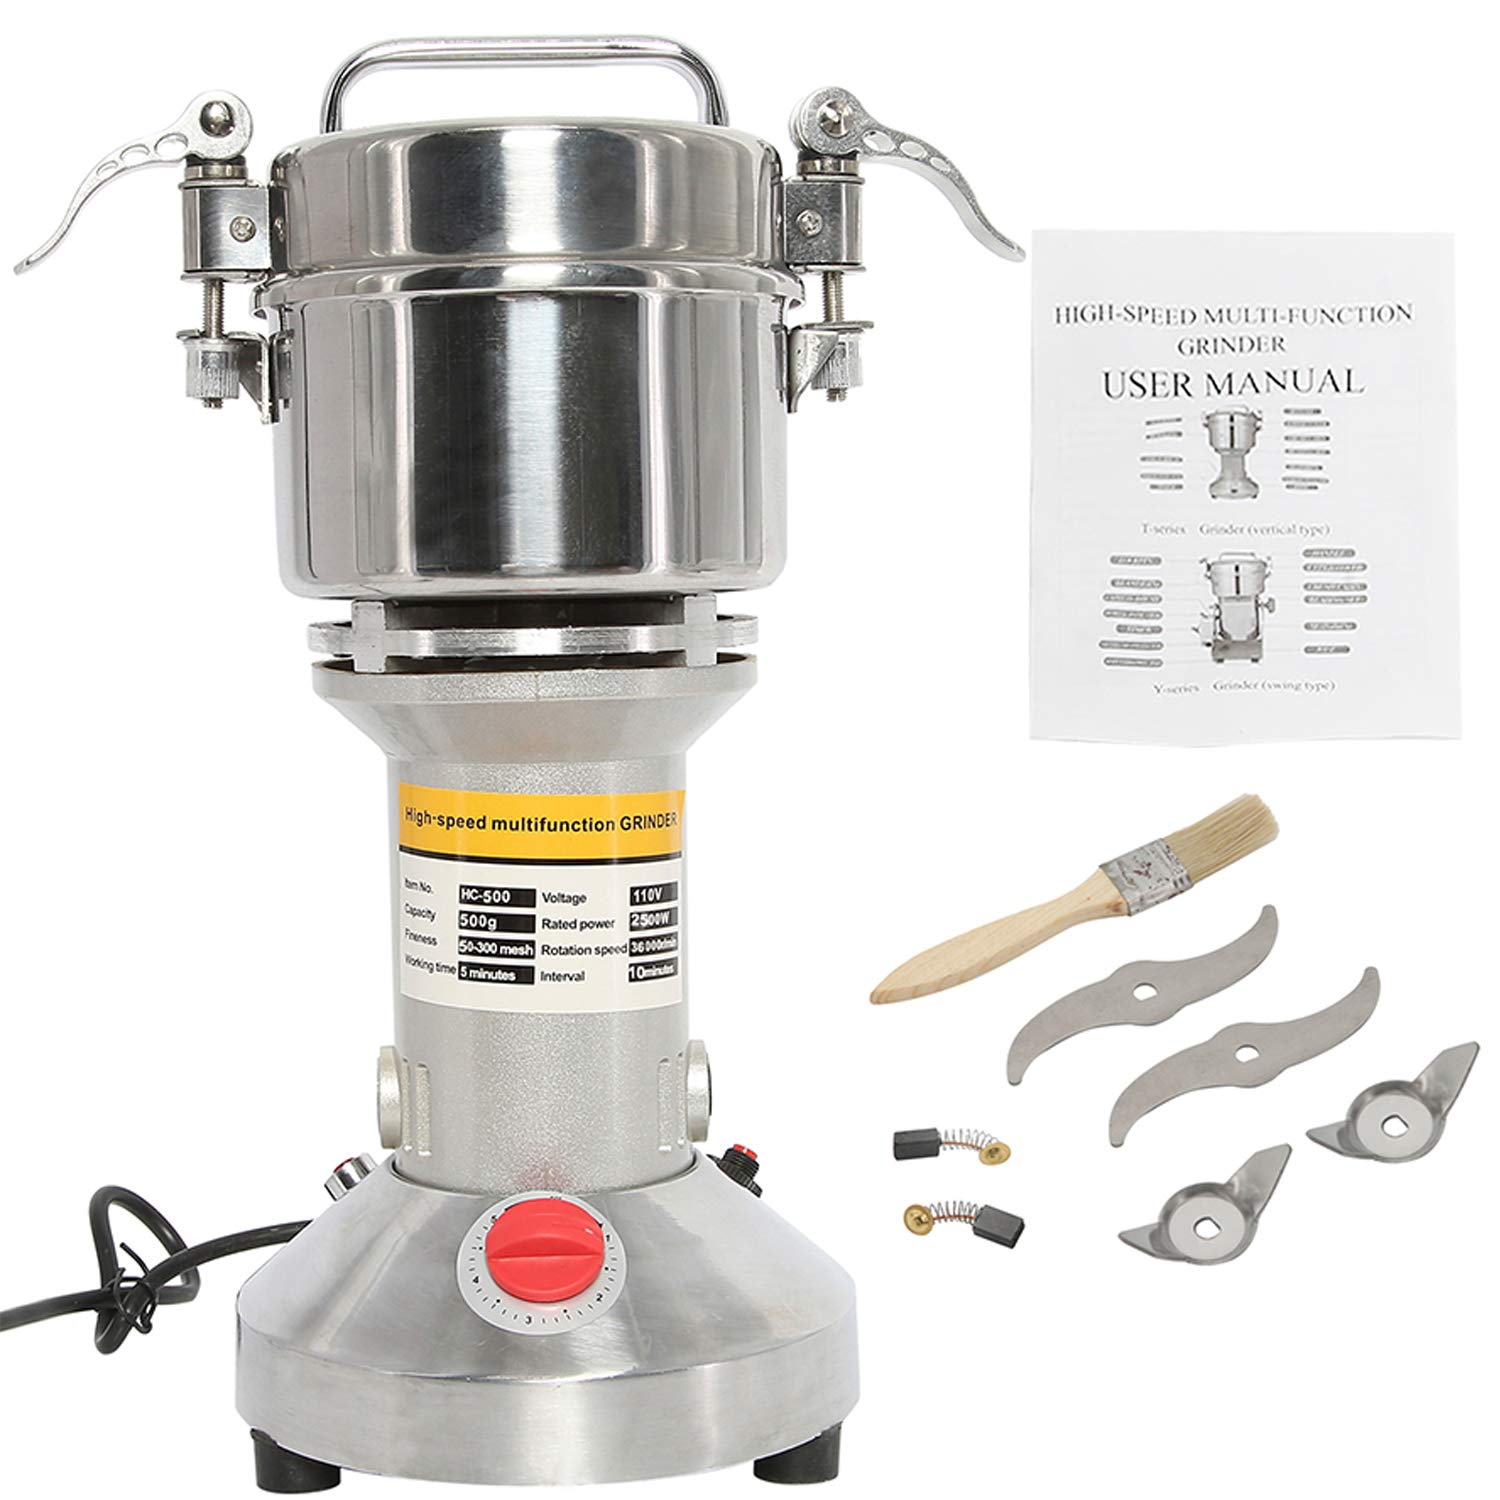 HYDDNice 500g Grain Mill Grinder 2500W 50-300 Mesh 36000RPM High Speed Electric Stainless Steel Grinder Spice Herb Cereals Corn Flour Powder Machine Commercial Grade by HYDDNice